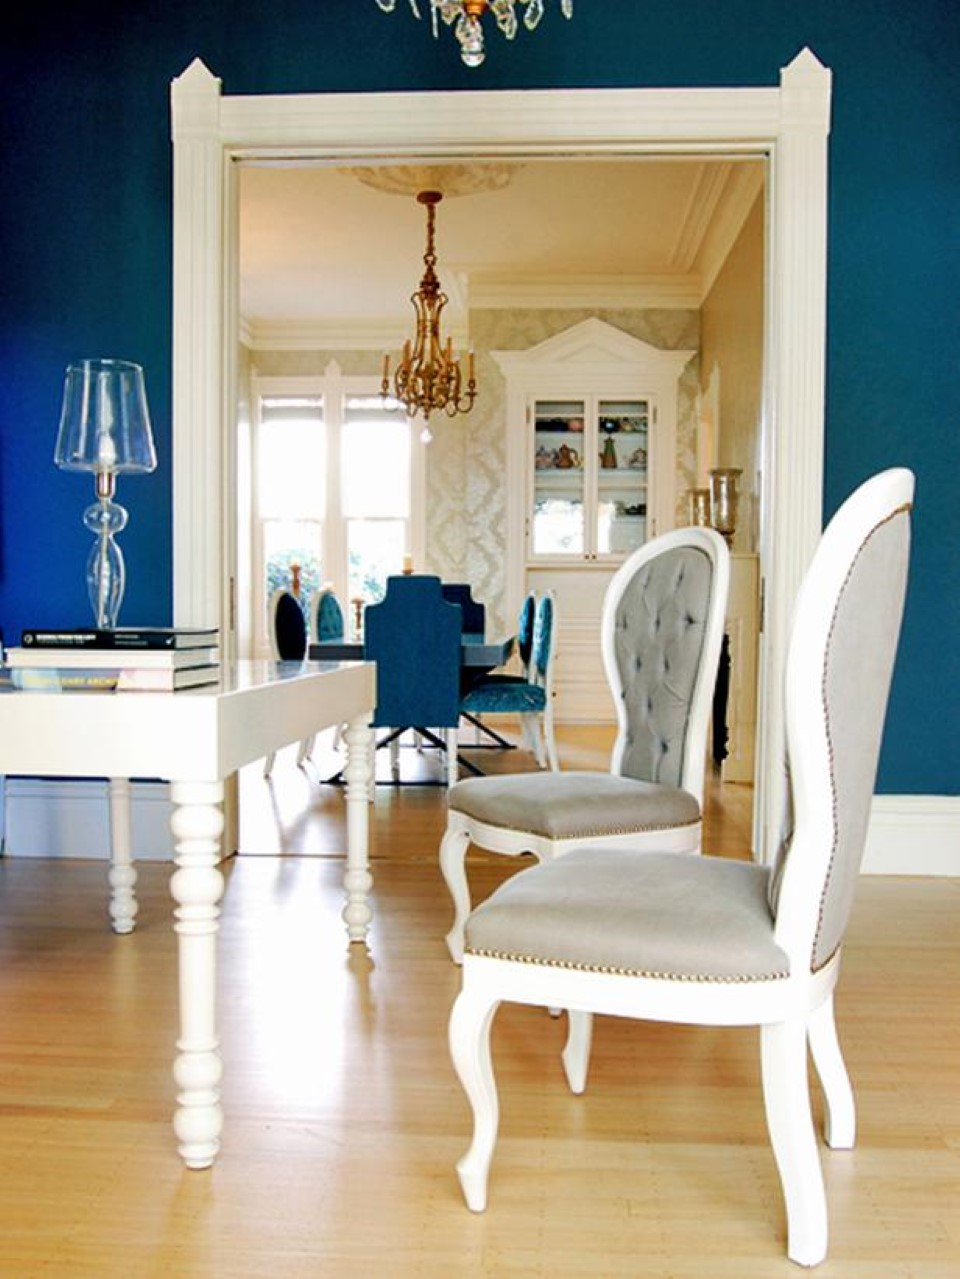 Gallery nsr flooring contractors quality flooring in for Dining room wood flooring ideas